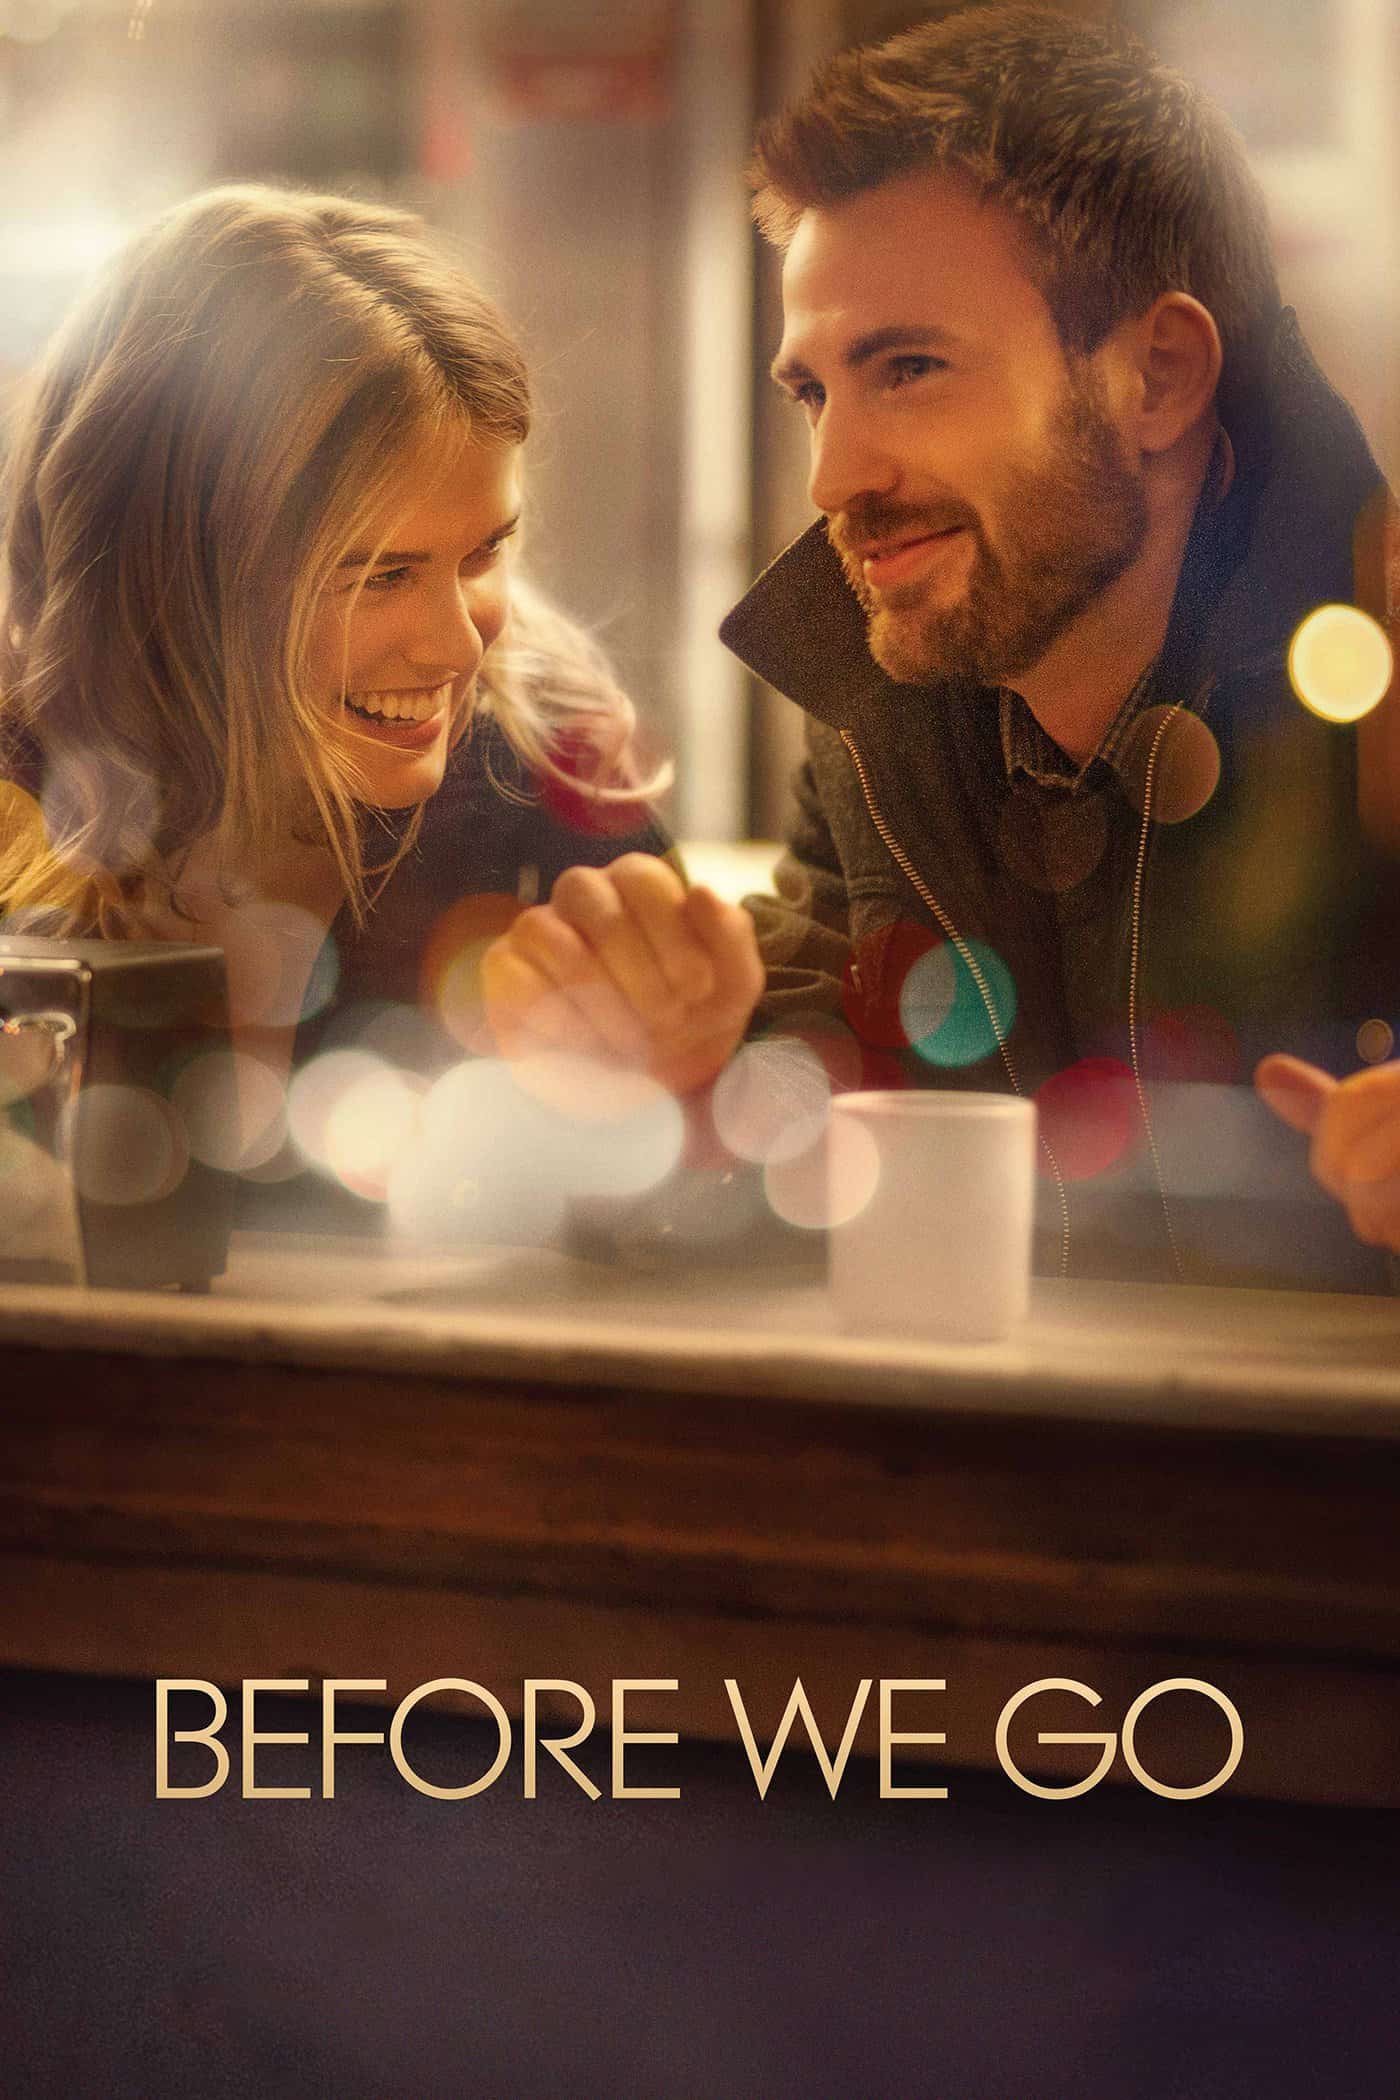 Before We Go, 2014